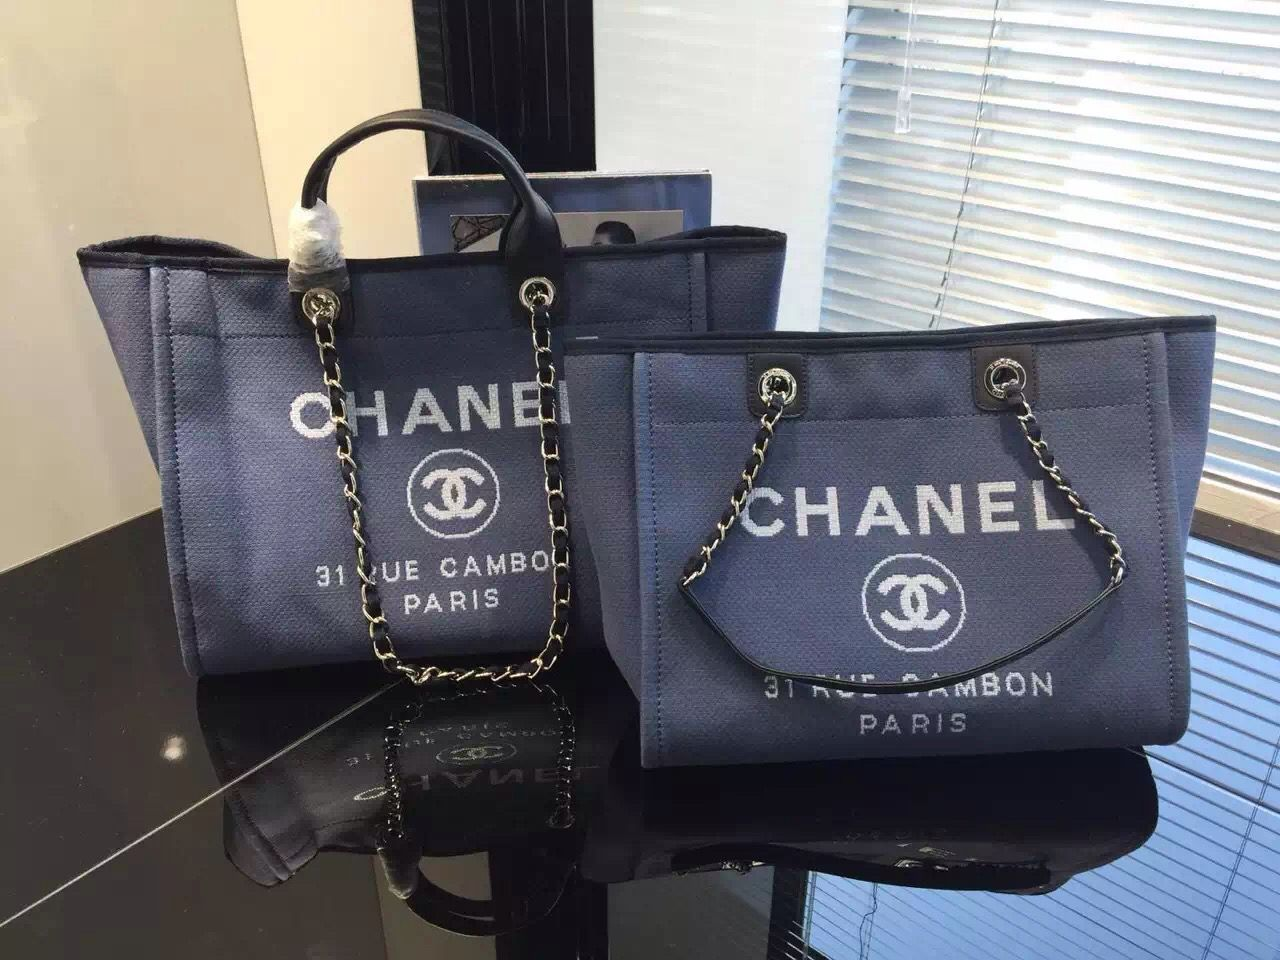 d1c1eb8342ea3f Chanel Toile Deauville Canvas Shopping Tote Bag 2015-2016 Collection |  HANDBAG HAVEN | Pinterest